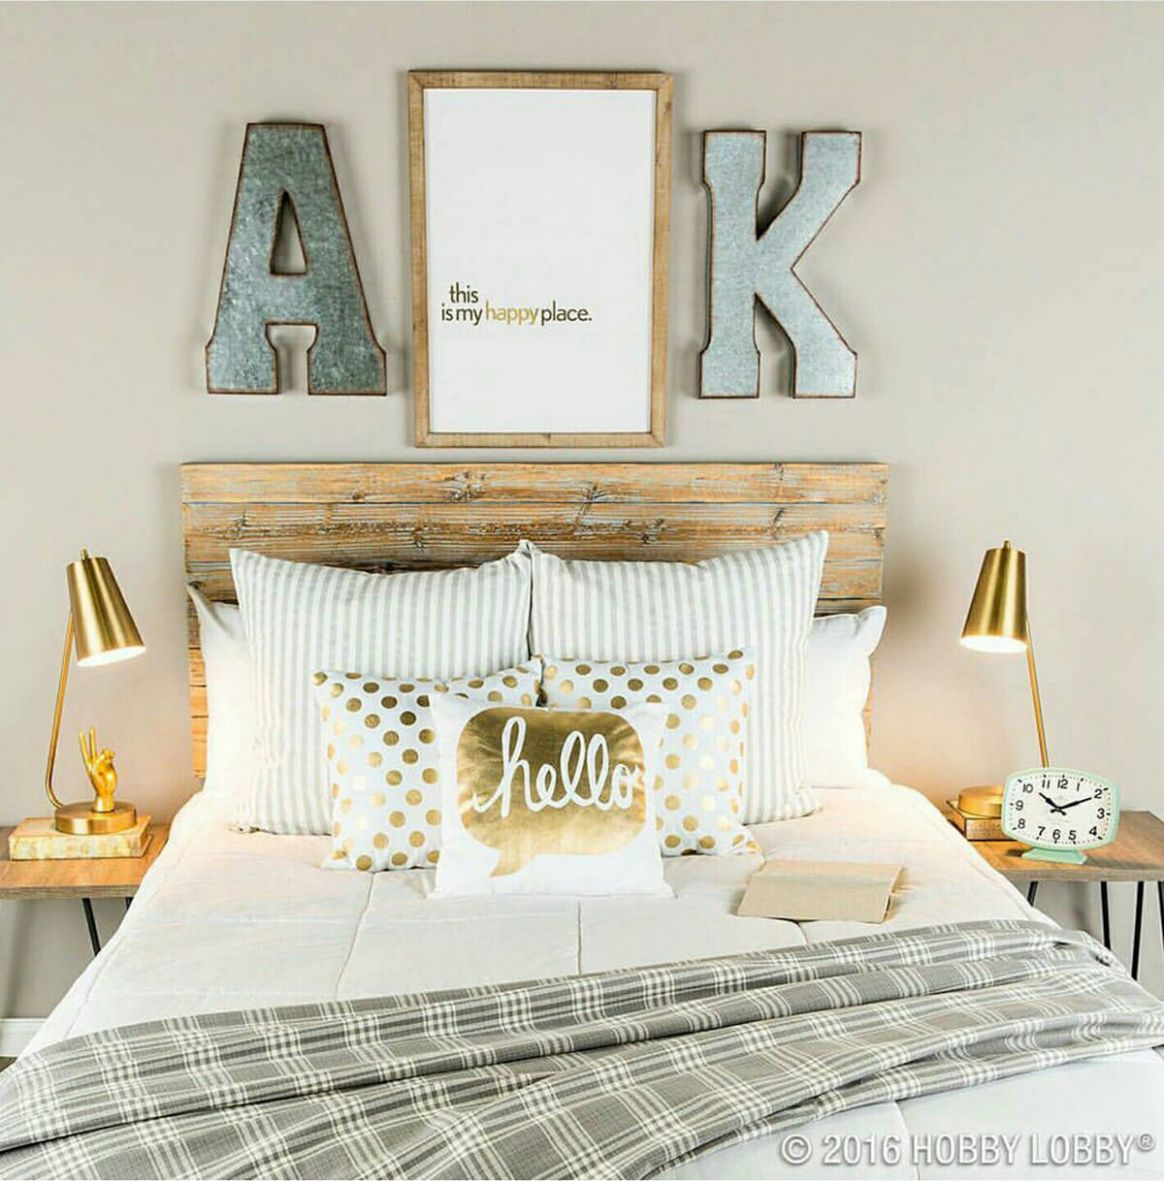 12+ Classy Bedroom Wall Decor Ideas to Style Up Your Space | Rina ...